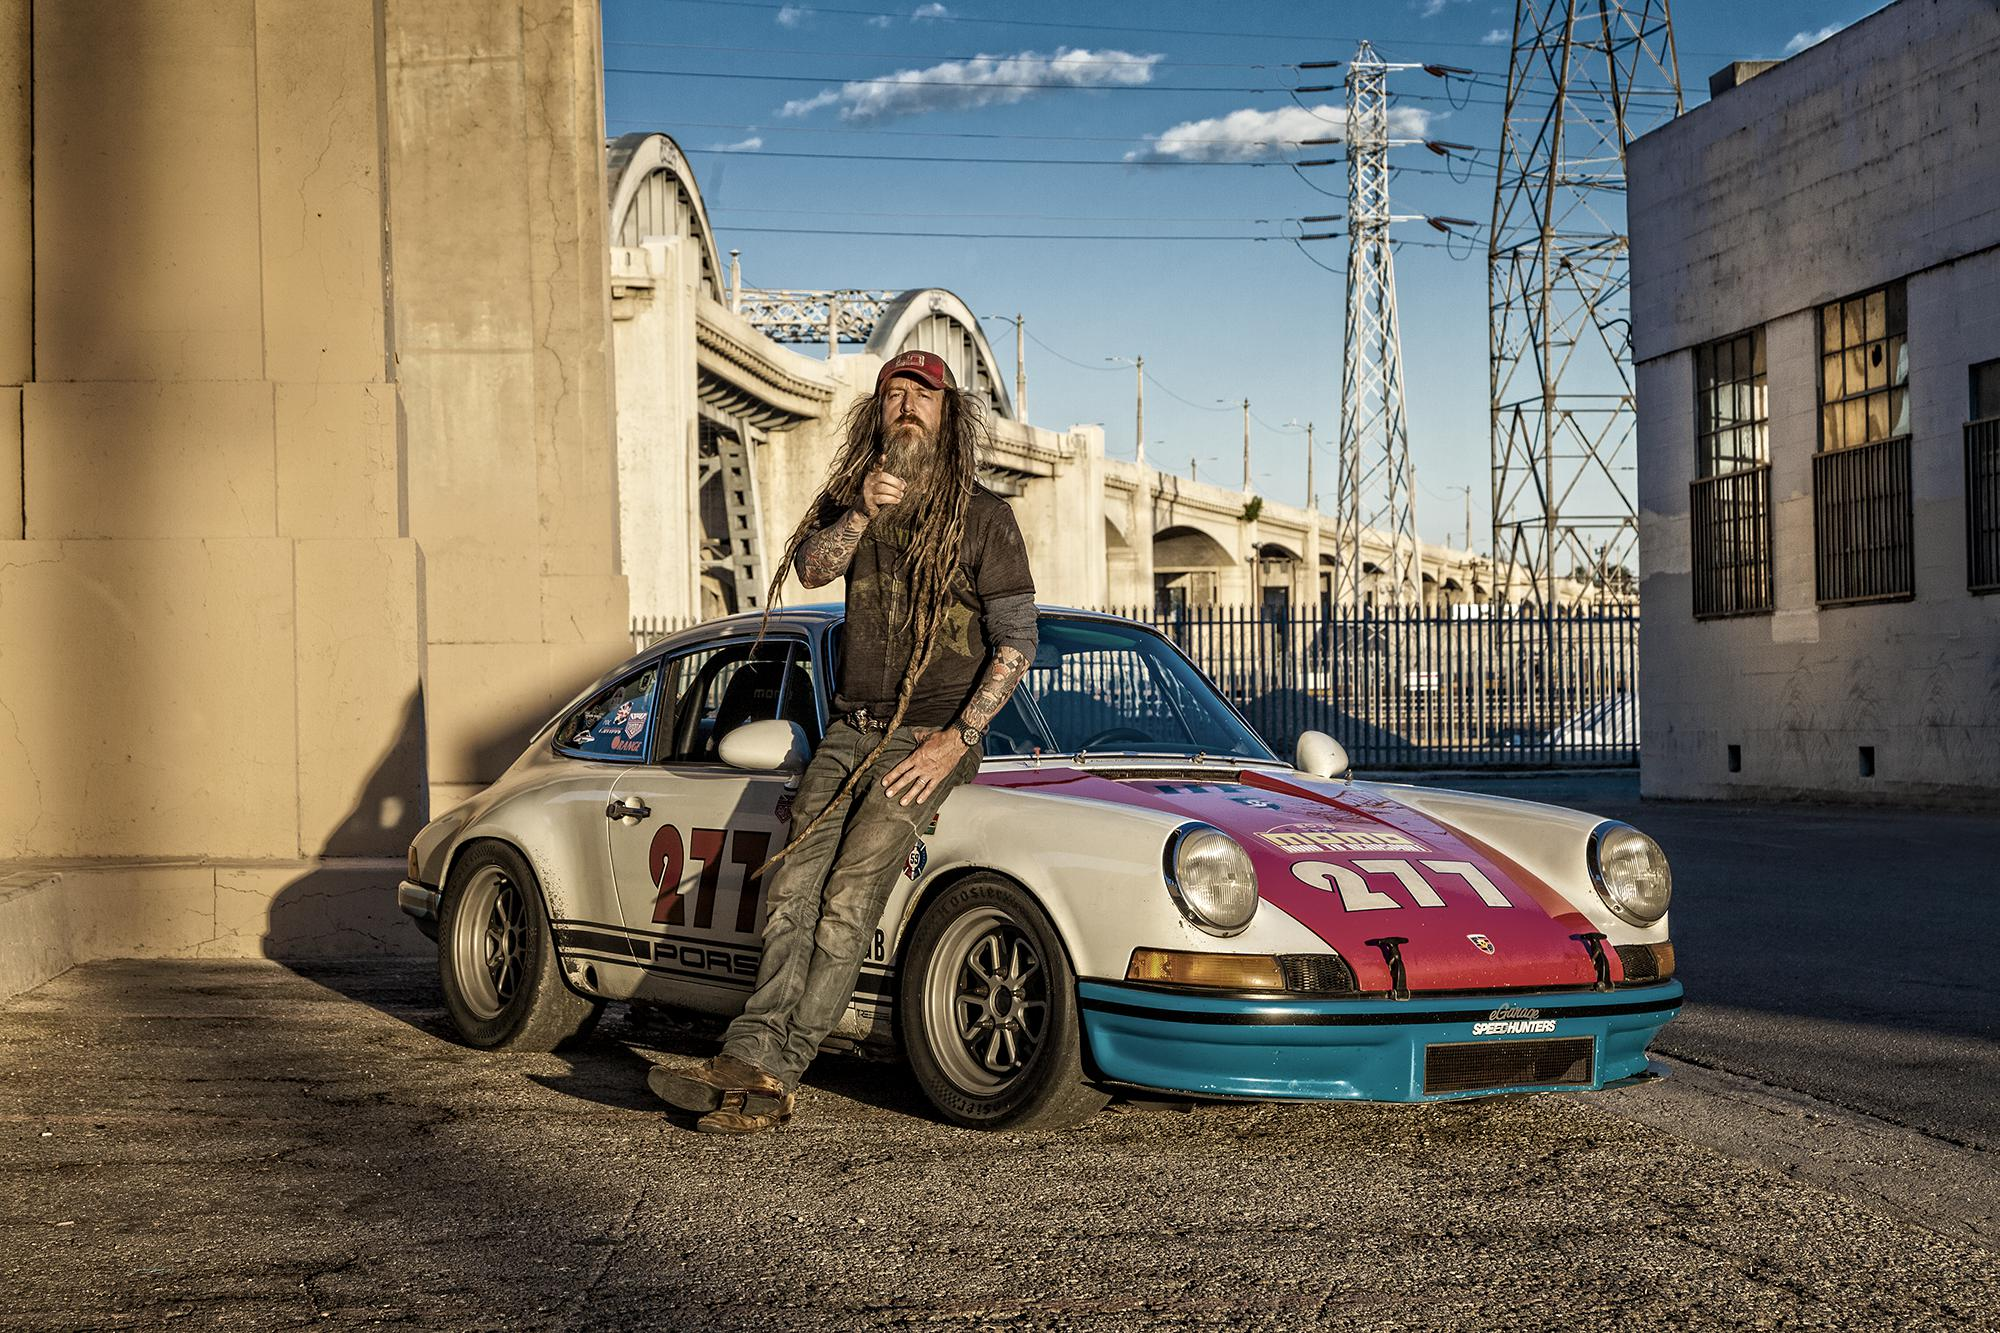 Magnus Walker leans against his 277 Porsche rac car under the 6th street bridge in Los Angeles